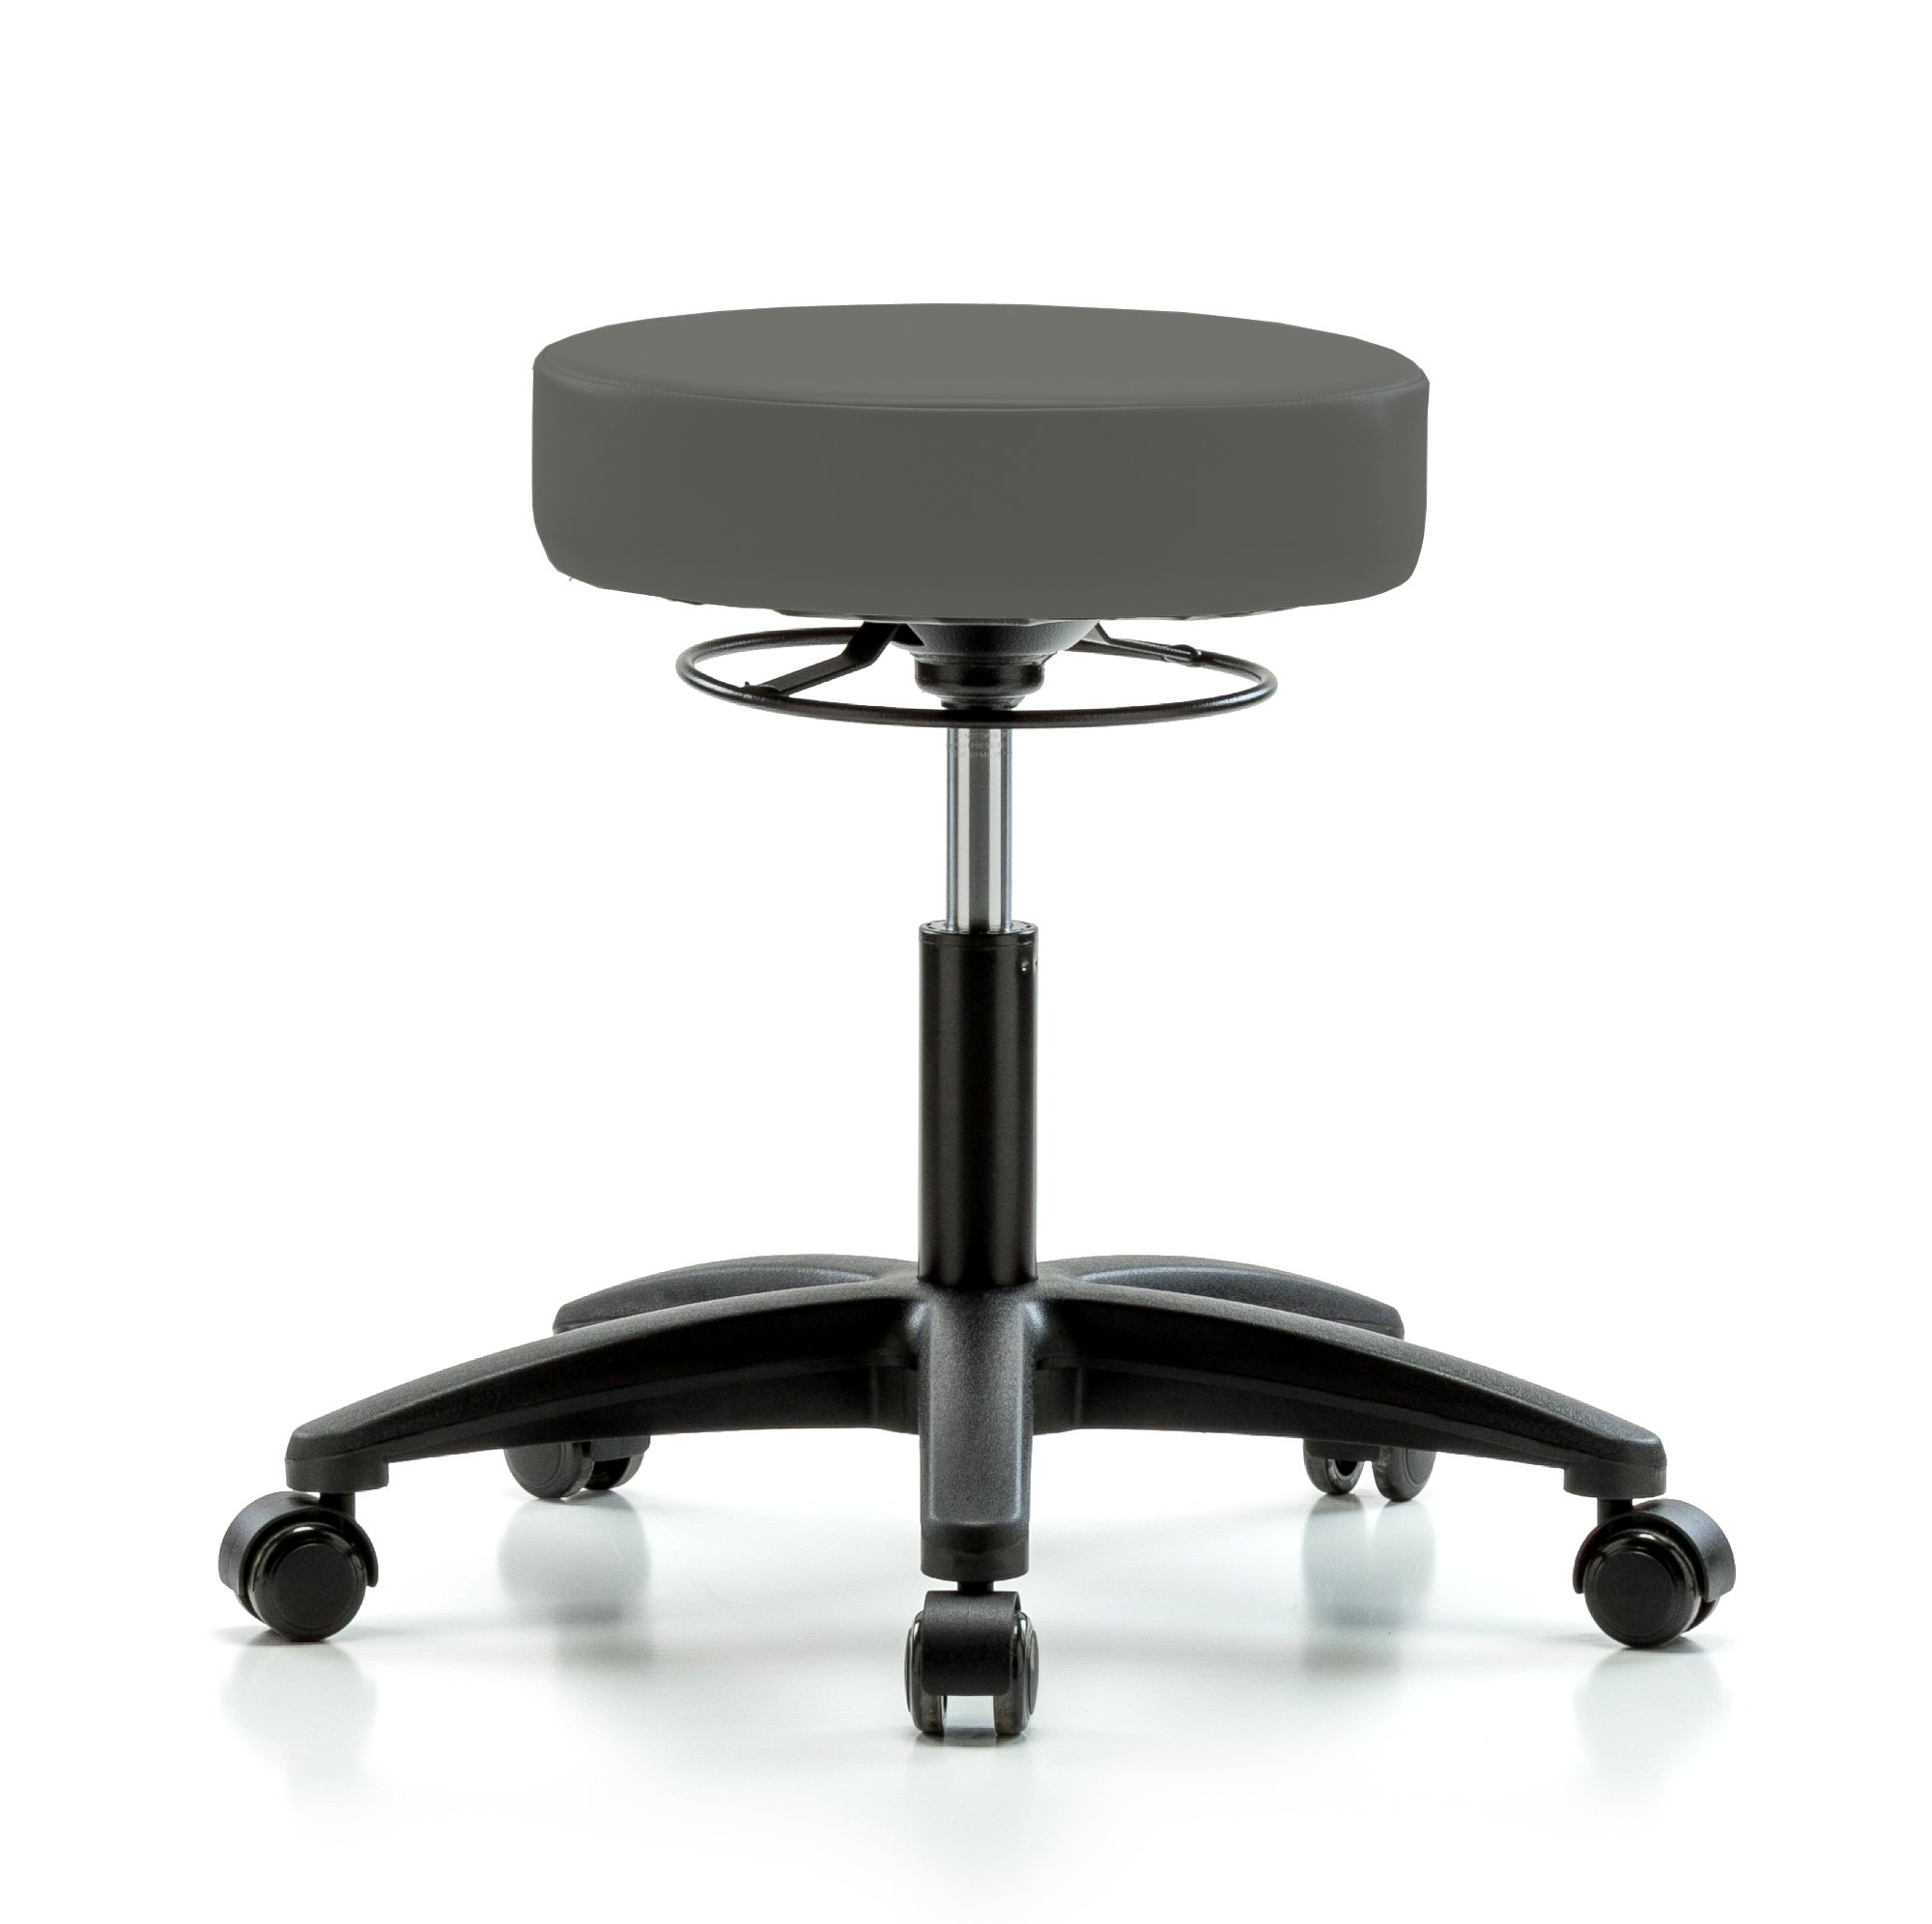 workshop wheels retro with garage dental exam pin office height medical perch adjustable stool